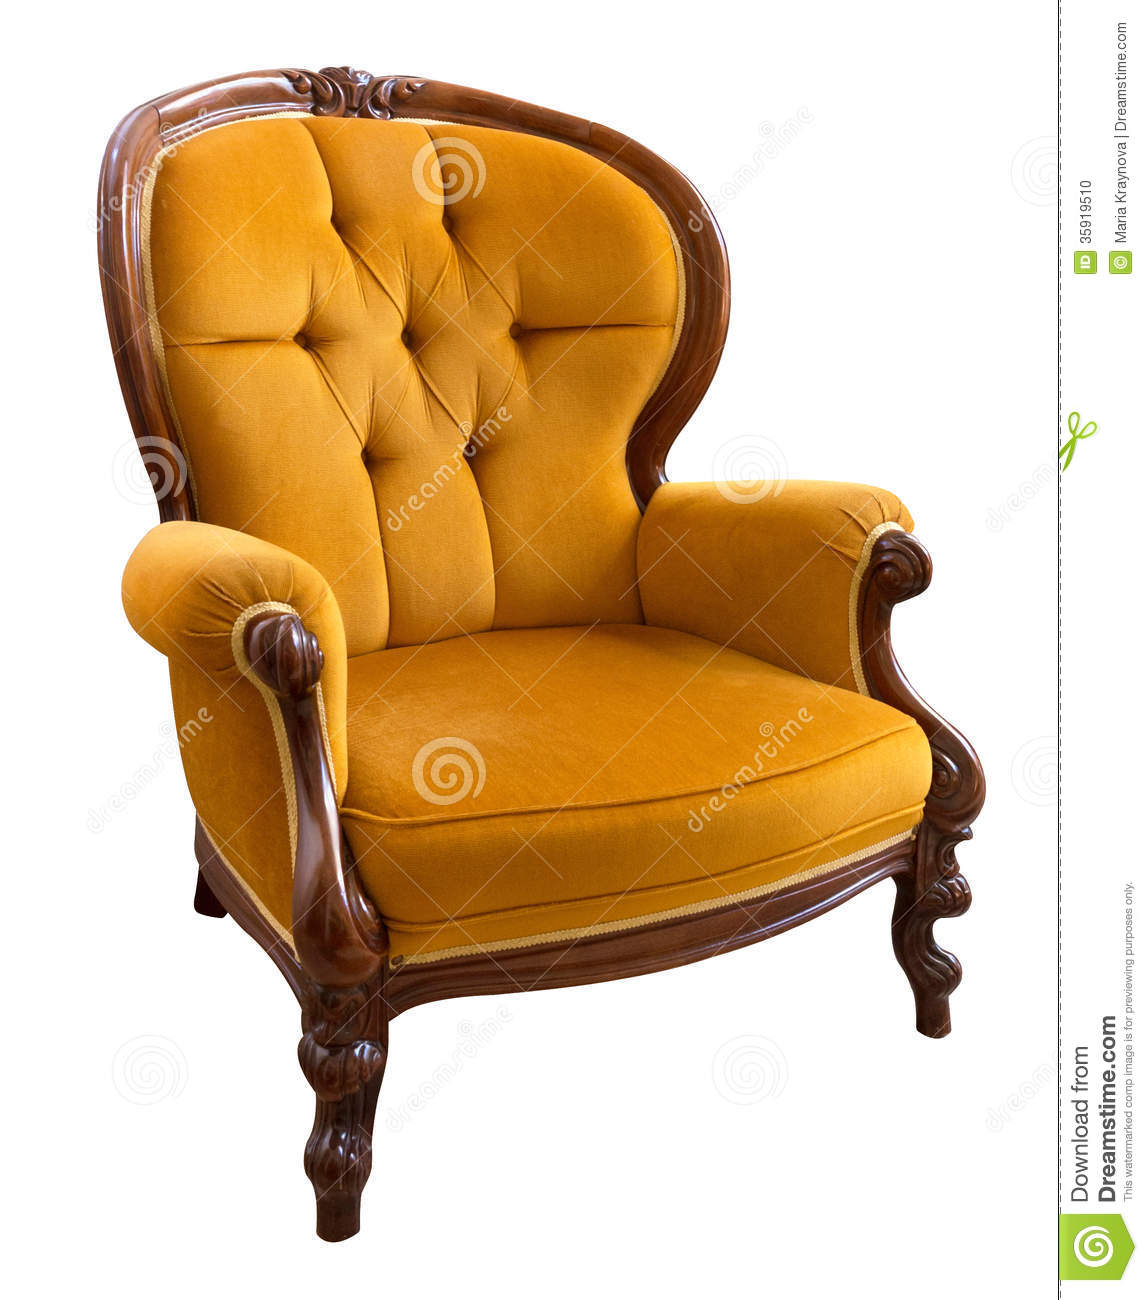 Vintage armchair - Vintage Armchair Stock Photo. Image Of Pattern, Baroque  - 35919510 - Antique Arm Chair Antique Furniture